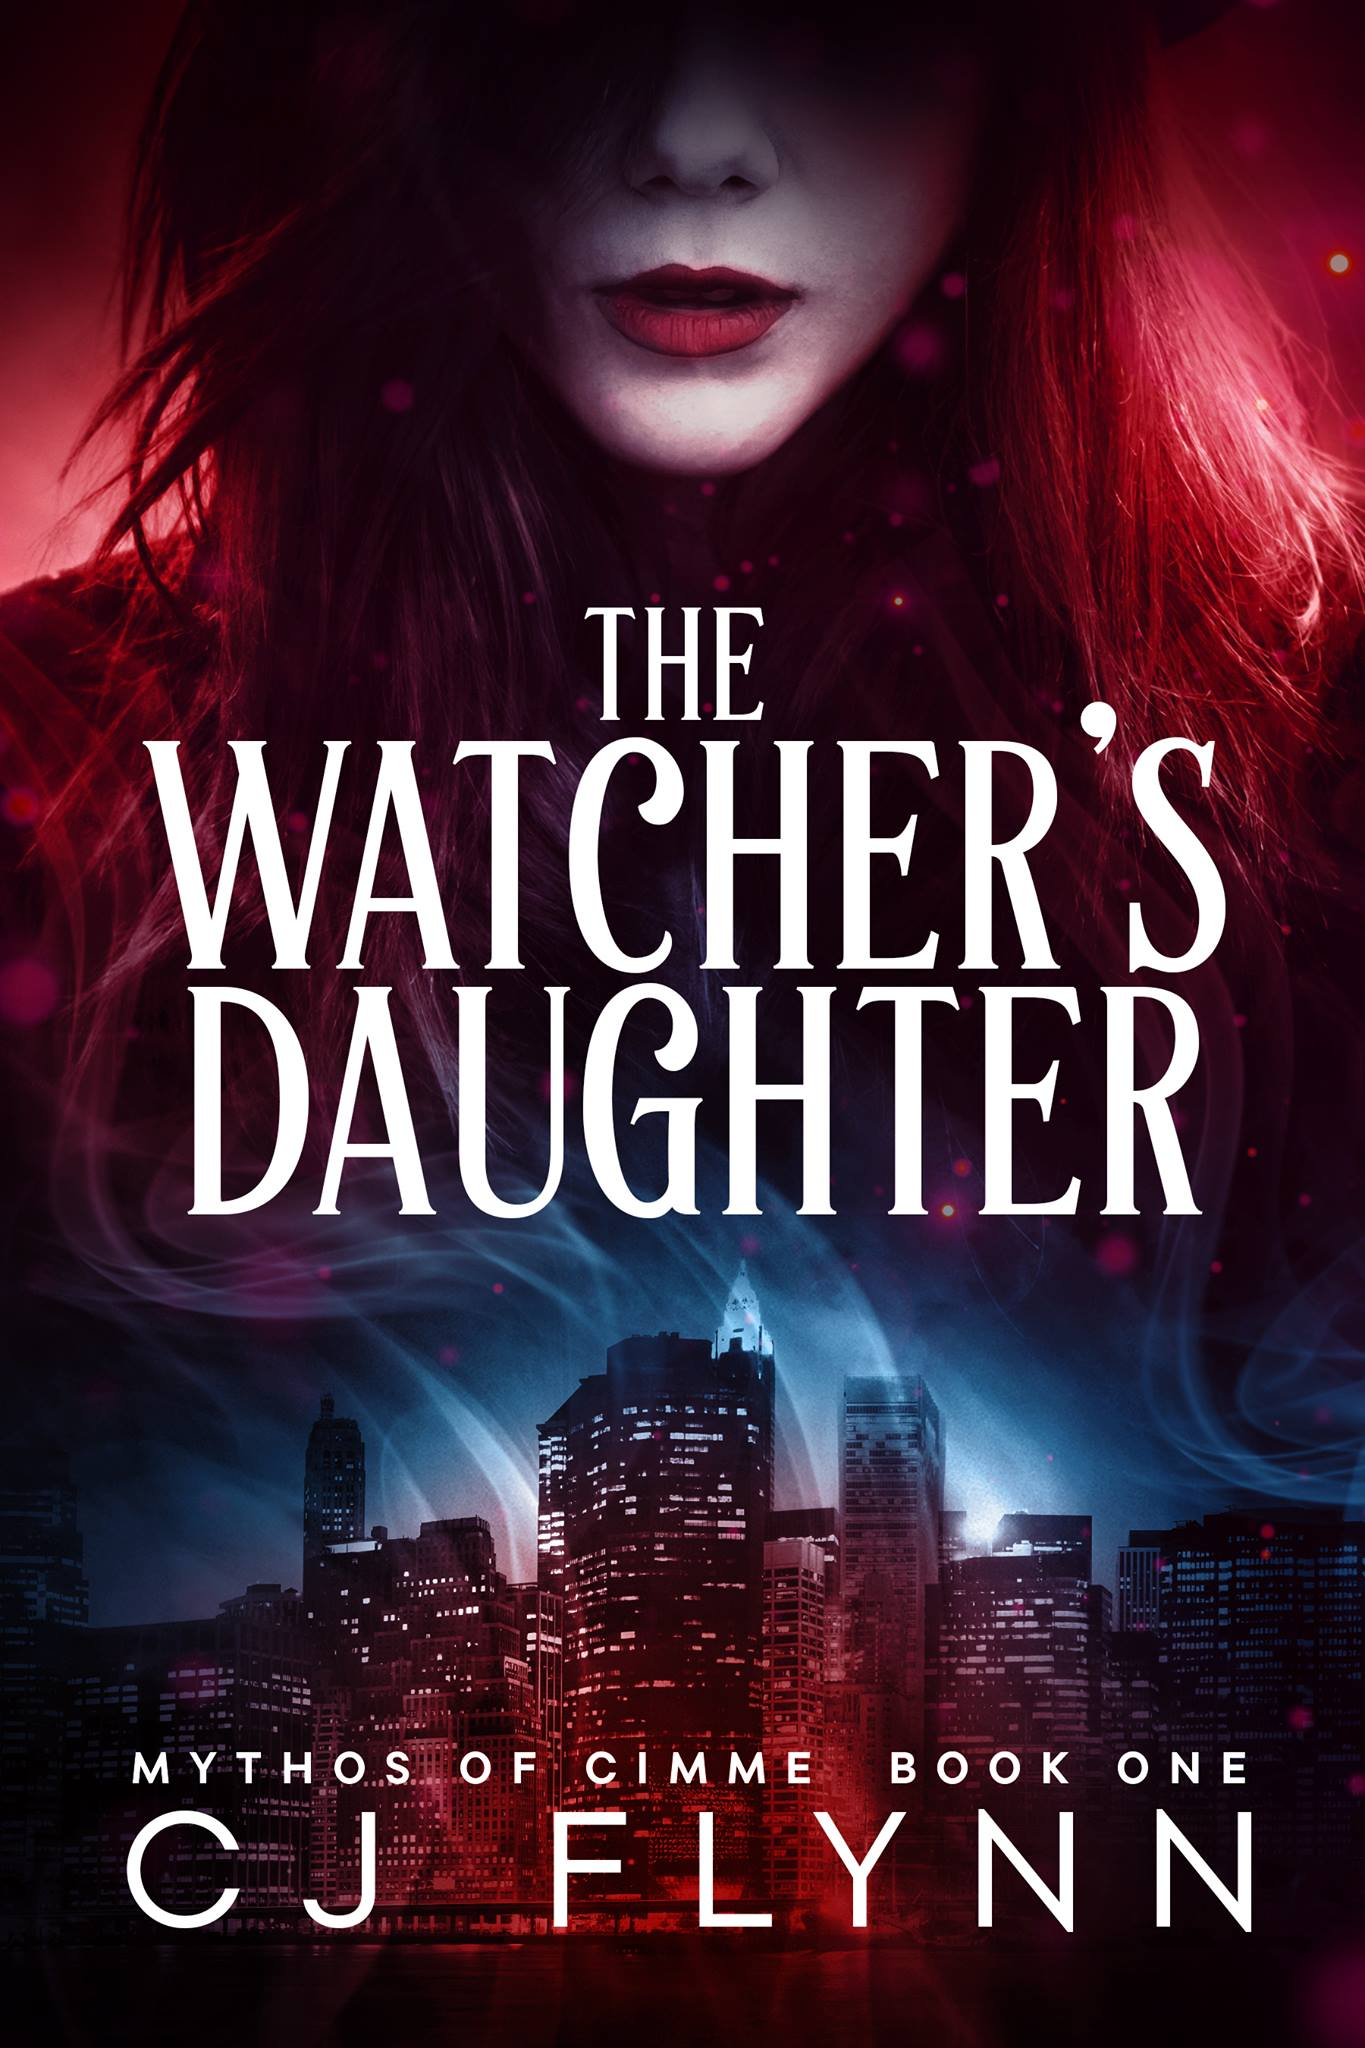 Mythos of Cimme, Book 1: The Watcher's Daughter